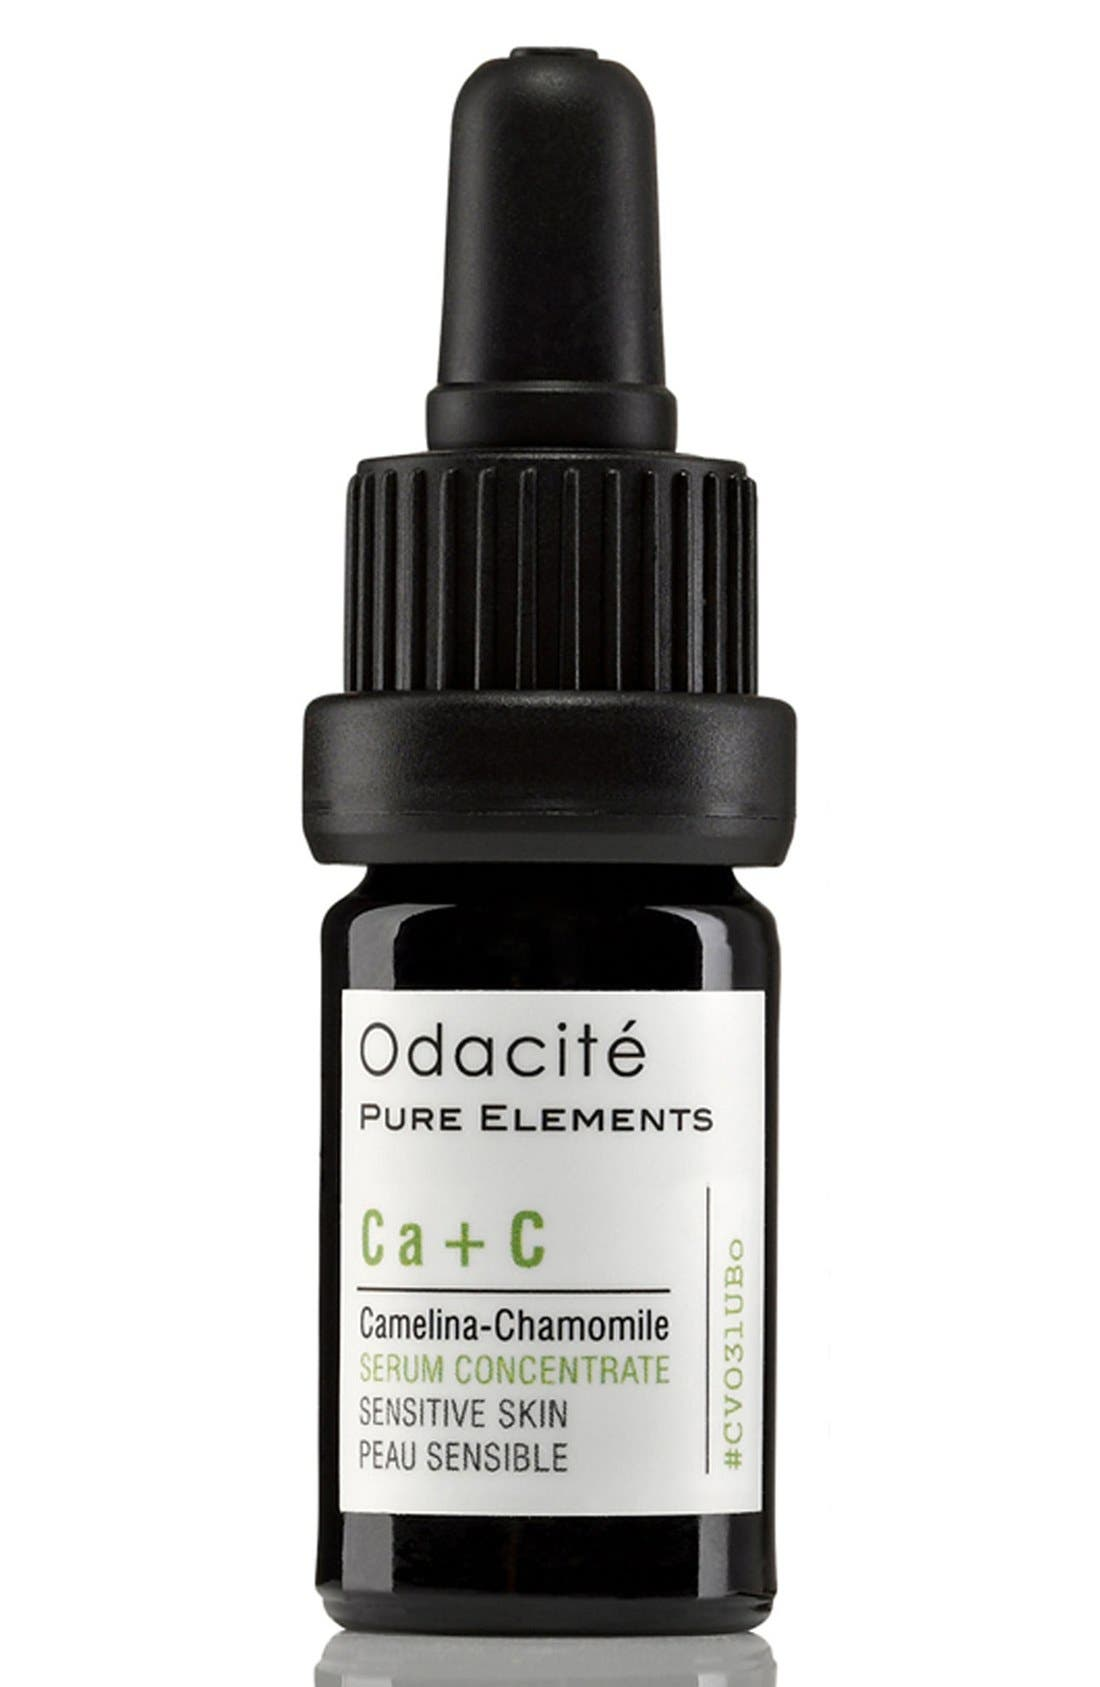 Odacité Ca + C Camelina-Chamomile Sensitive Skin Serum Concentrate